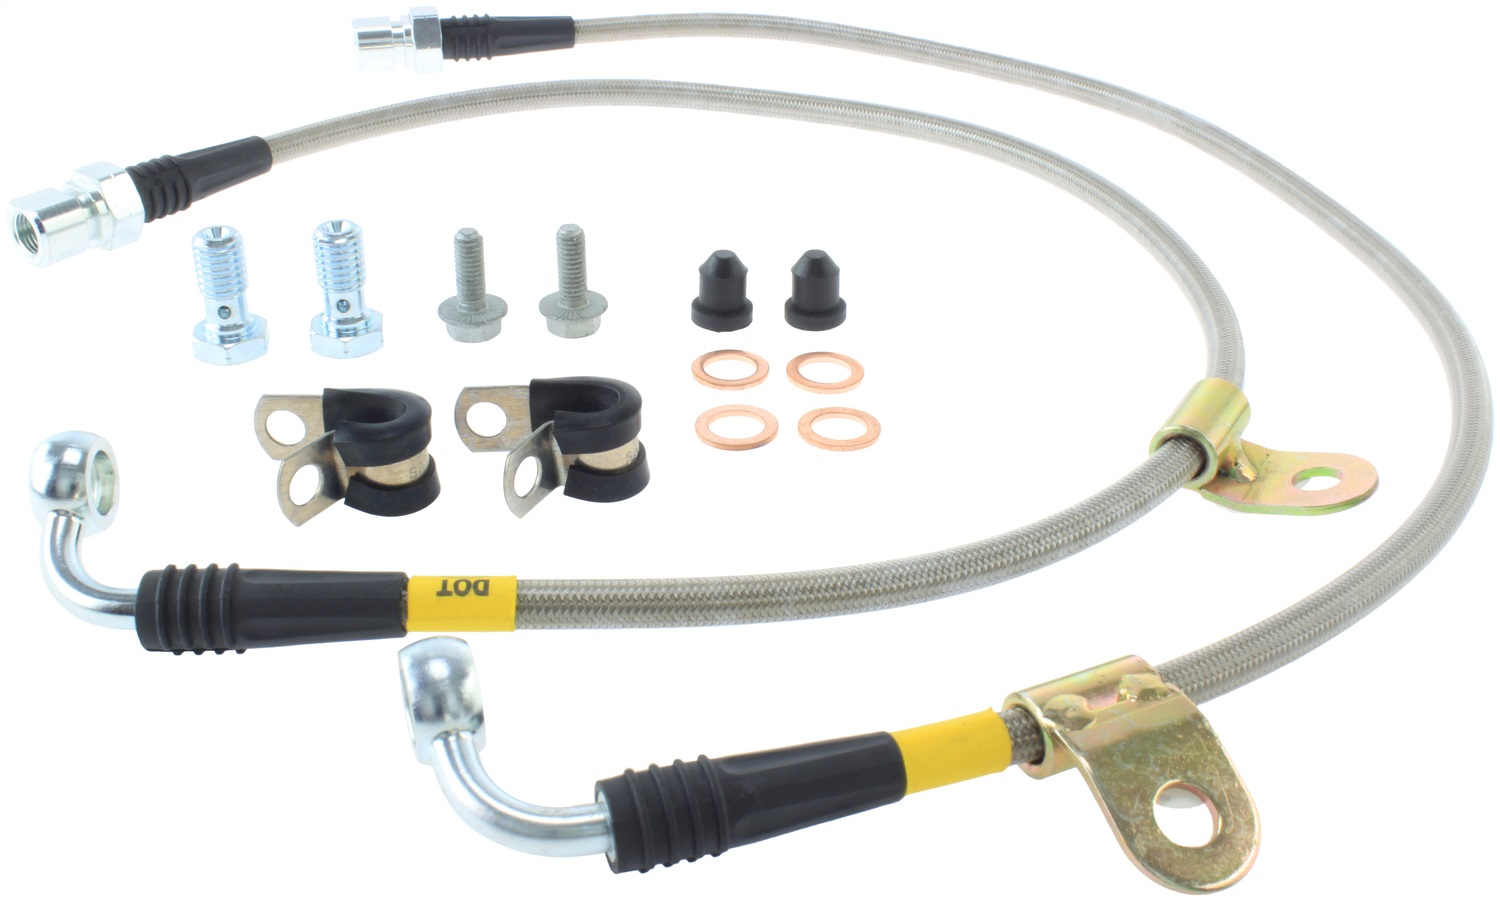 StopTech 950.34005 Stainless Steel Braided Brake Hose Kit Front Stainless Steel Braided Brake Hose Kit